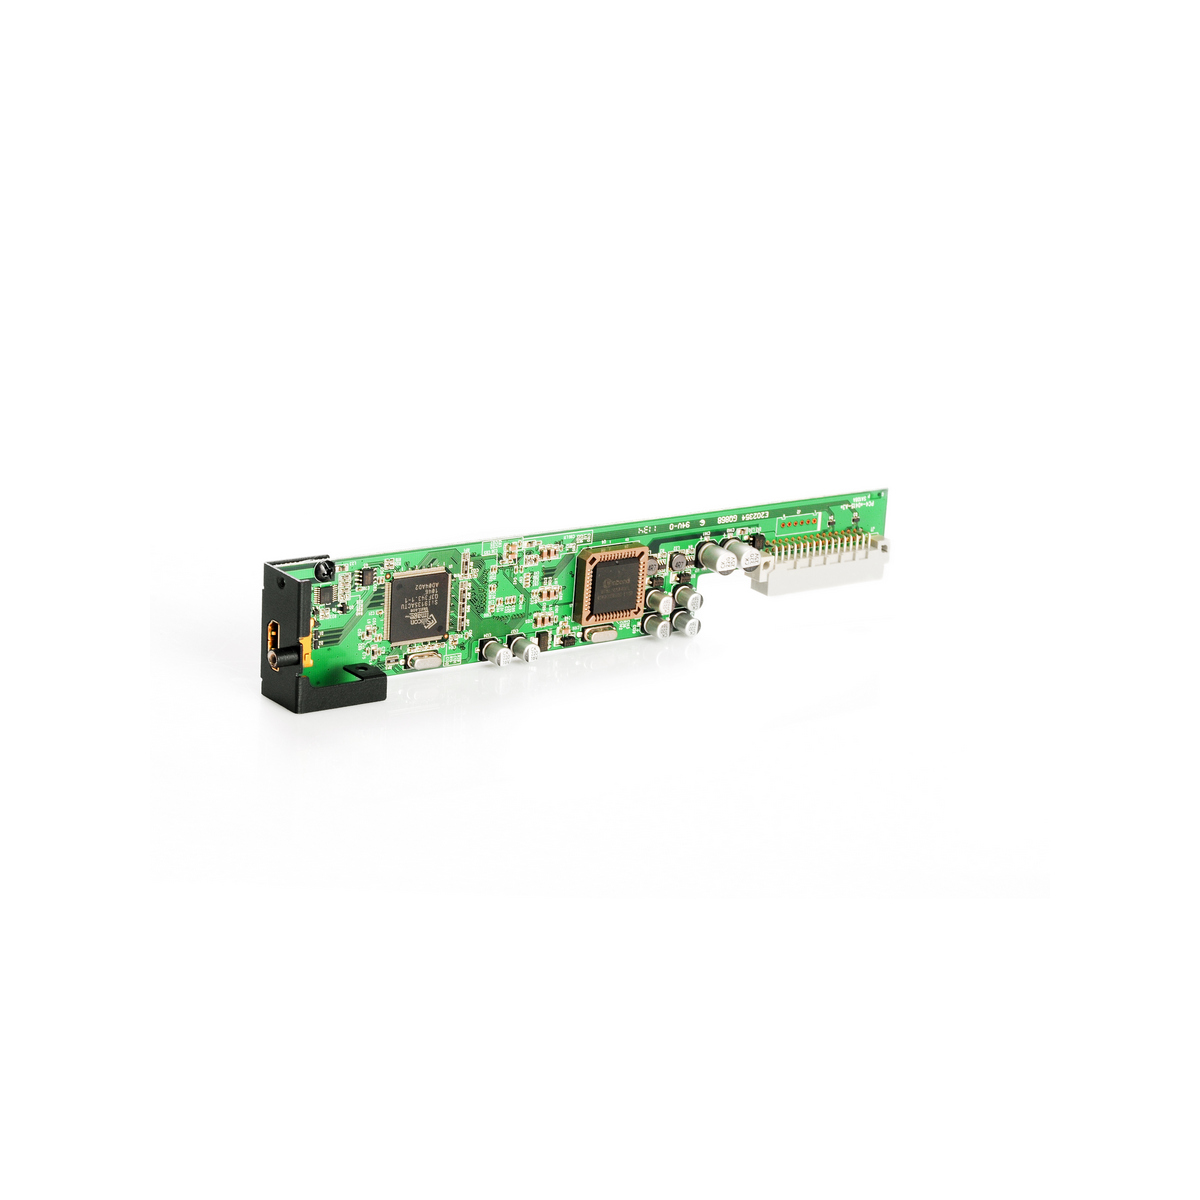 Zigen MODULAR (HDMI) OUT CARD HX-88 I/O-OUT